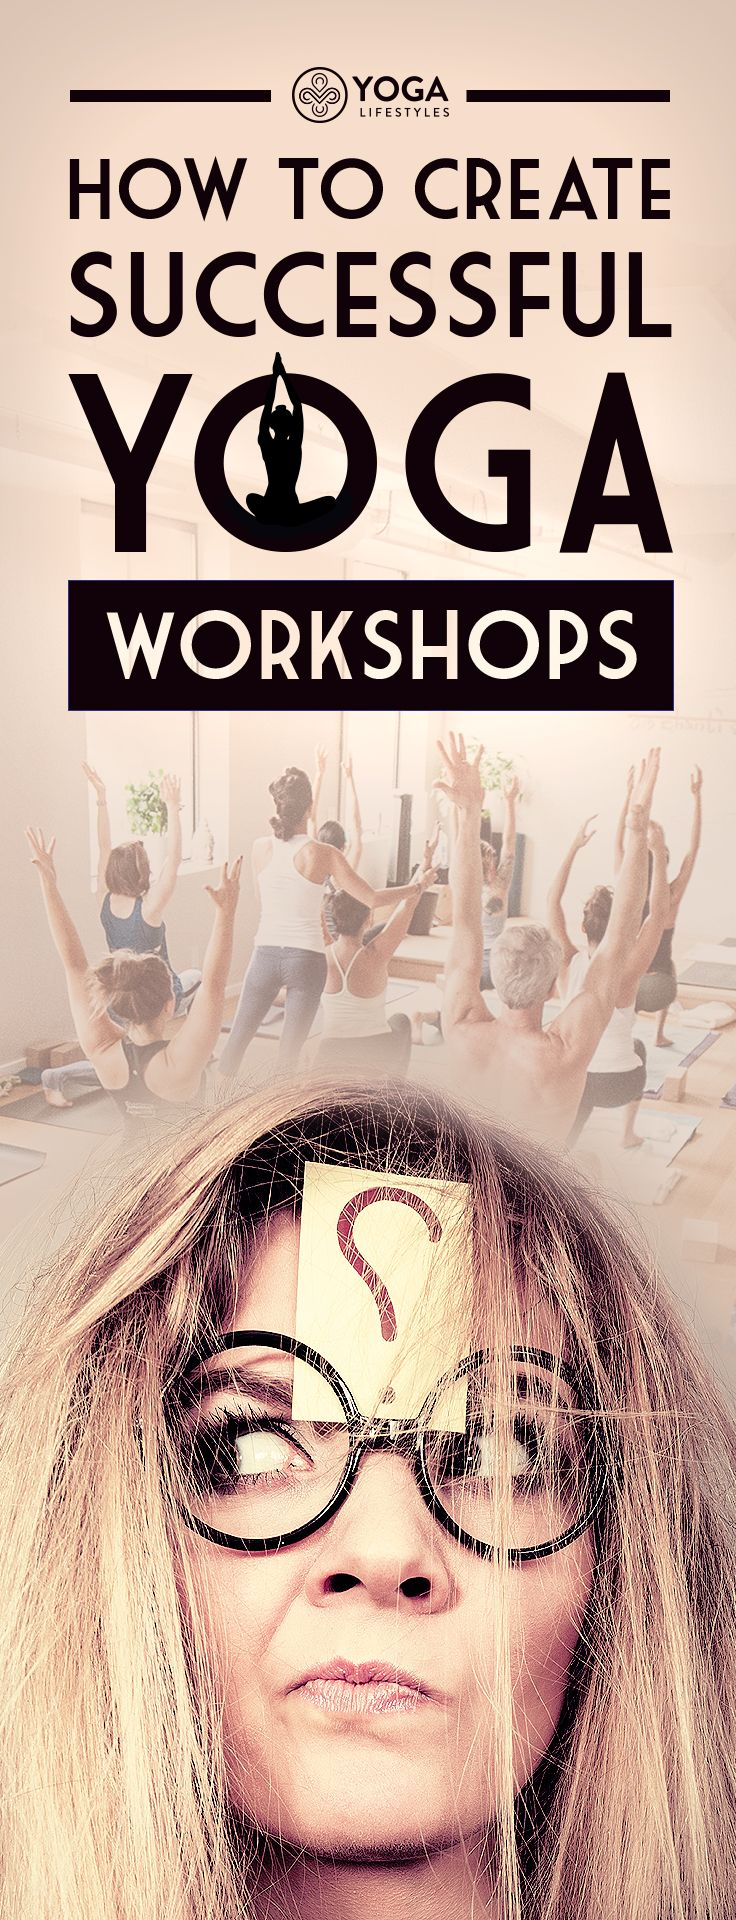 How To Create Successful Yoga Workshops